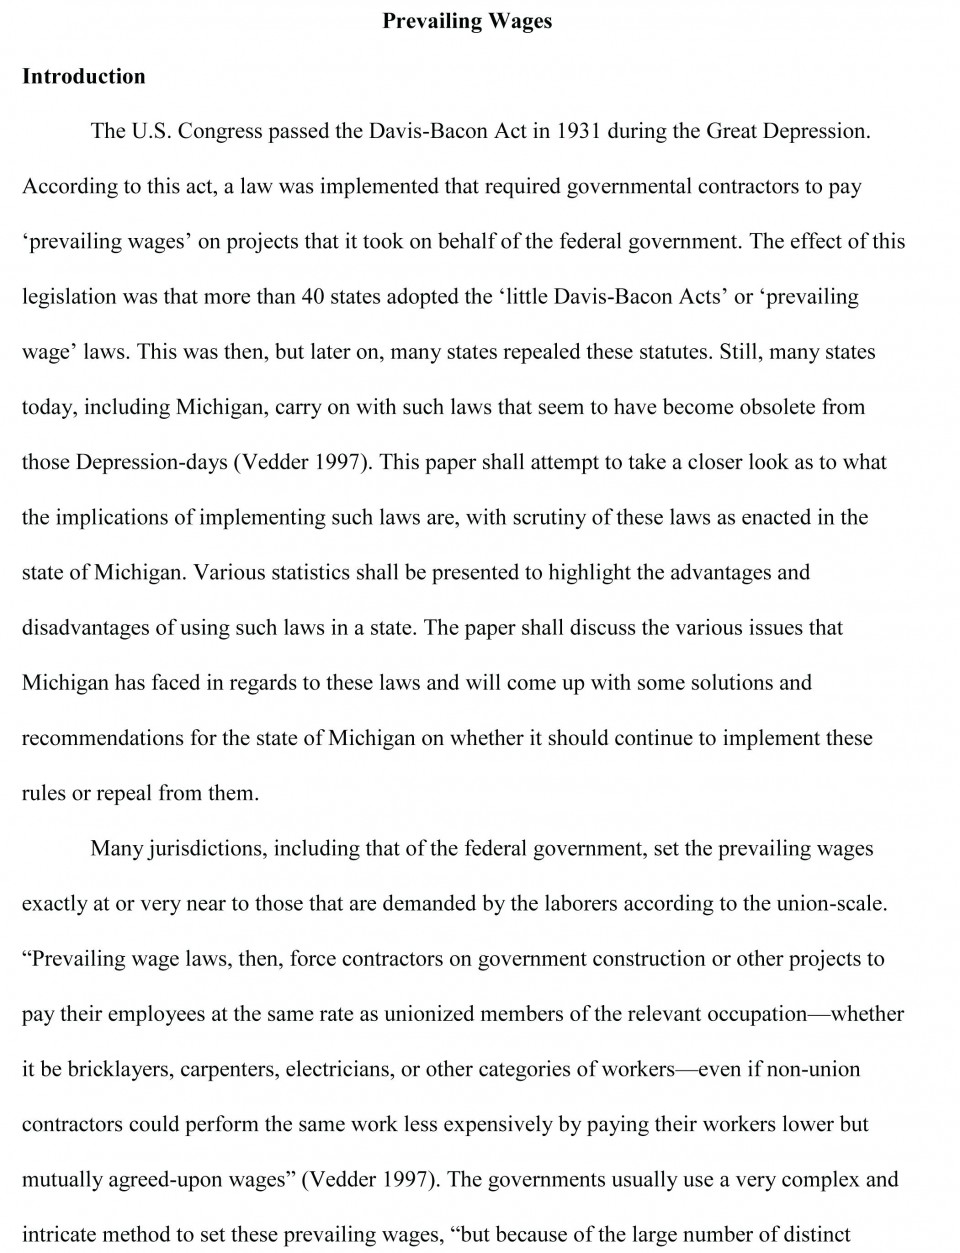 001 Essayxample Synthesisxamples Templtexmples Quickplumber Us Government And Politics Sttement Rgumenttive Sensational Synthesis Essay Prompt Outline Pdf 960